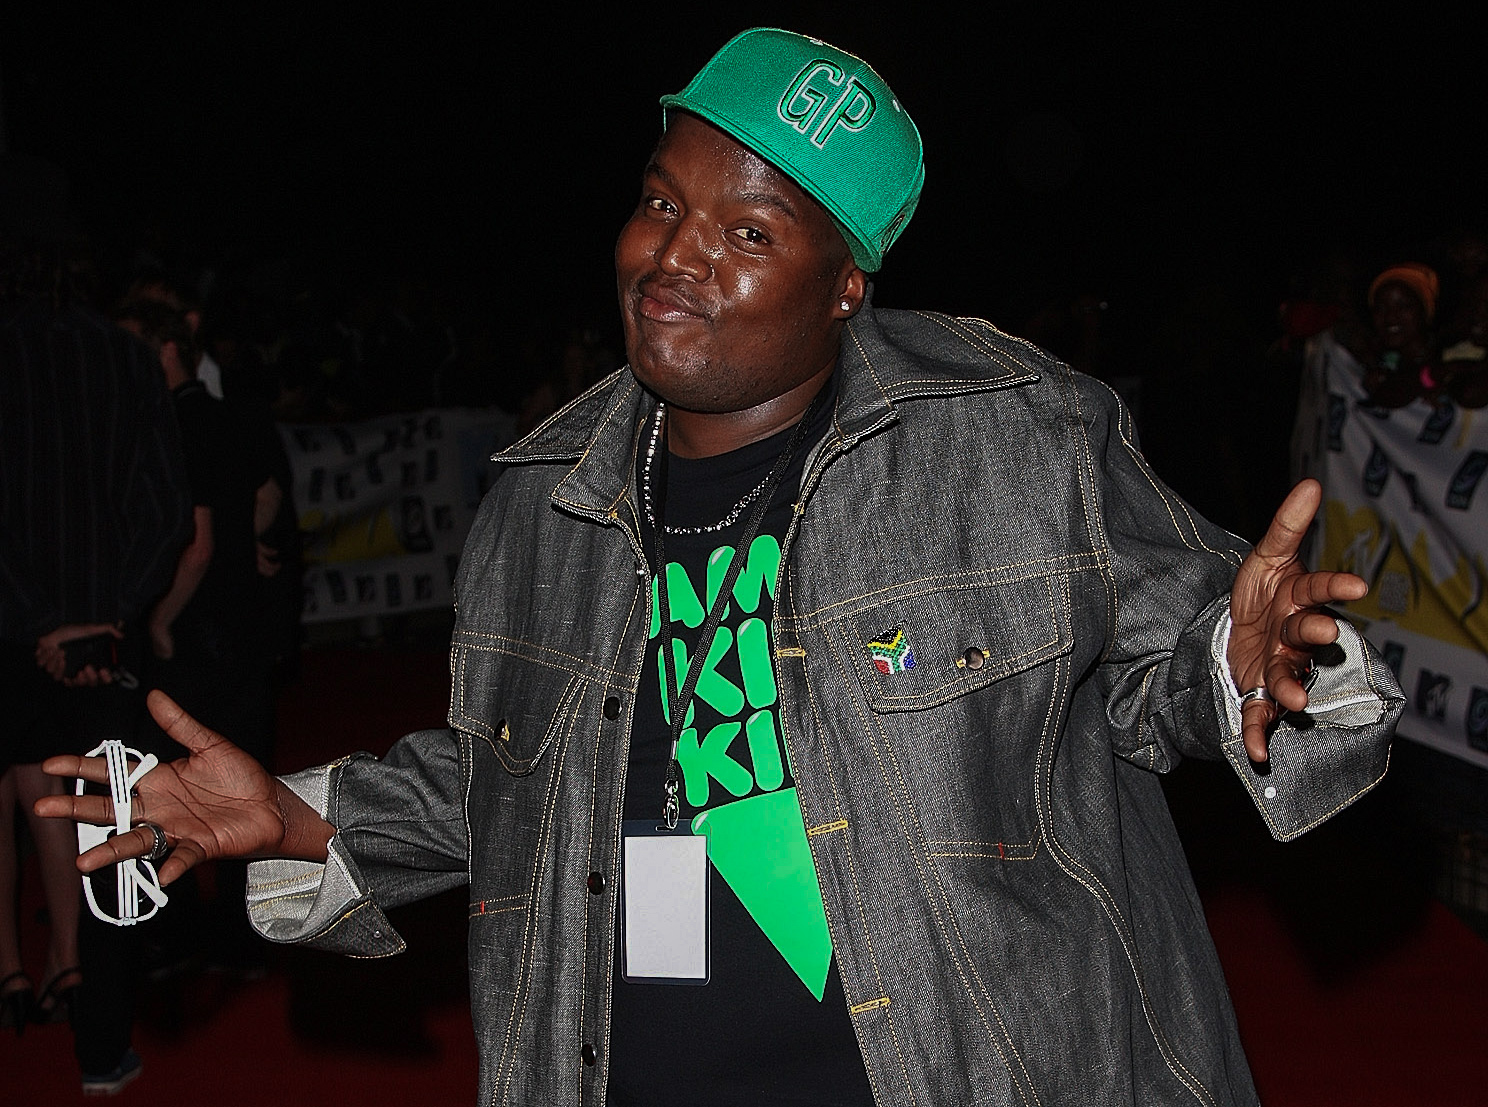 22 November 2008: Hip Hop Pantsula, better known as HHP, arrives for the MTV Africa Music Awards 2008 at the Abuja Velodrome in Abuja, Nigeria. (Photograph by Gareth Cattermole/Getty Images)